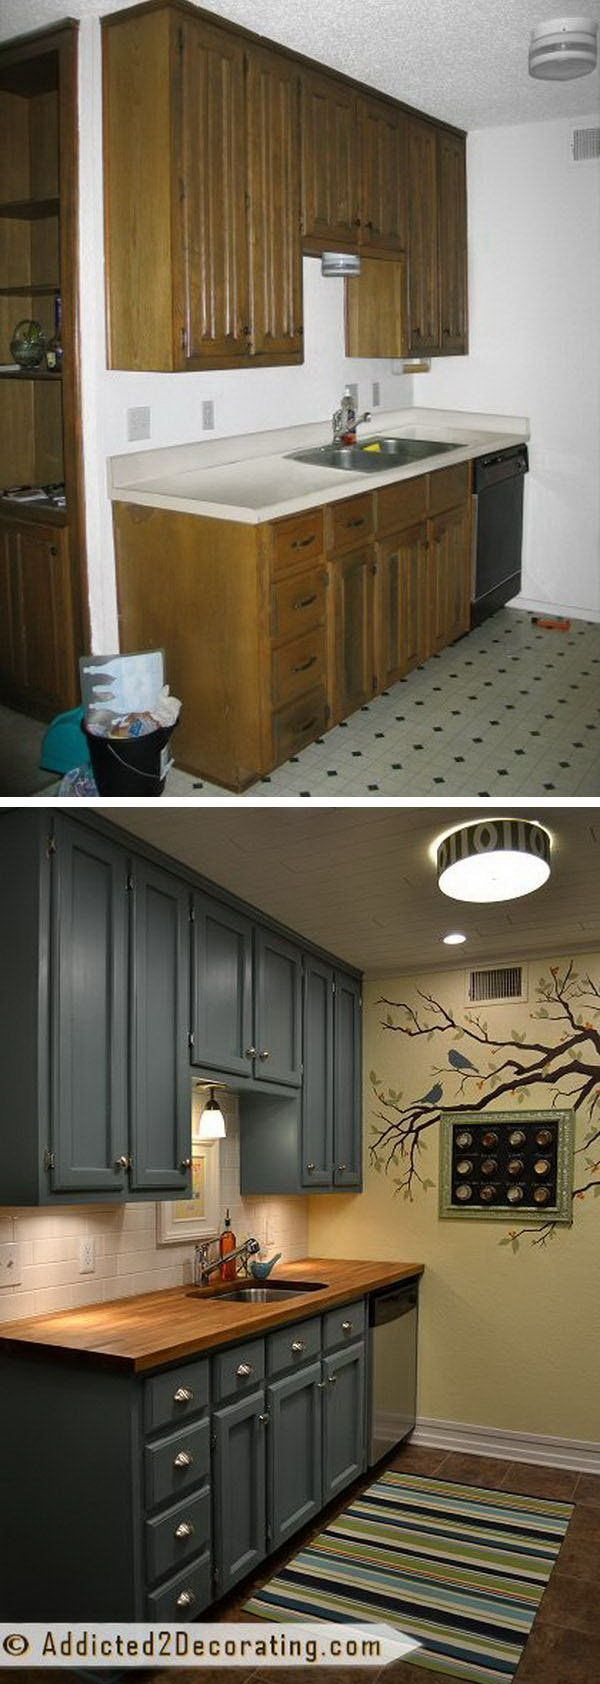 before and after 25 budget friendly kitchen makeover ideas namams 2 pinterest hausbau. Black Bedroom Furniture Sets. Home Design Ideas